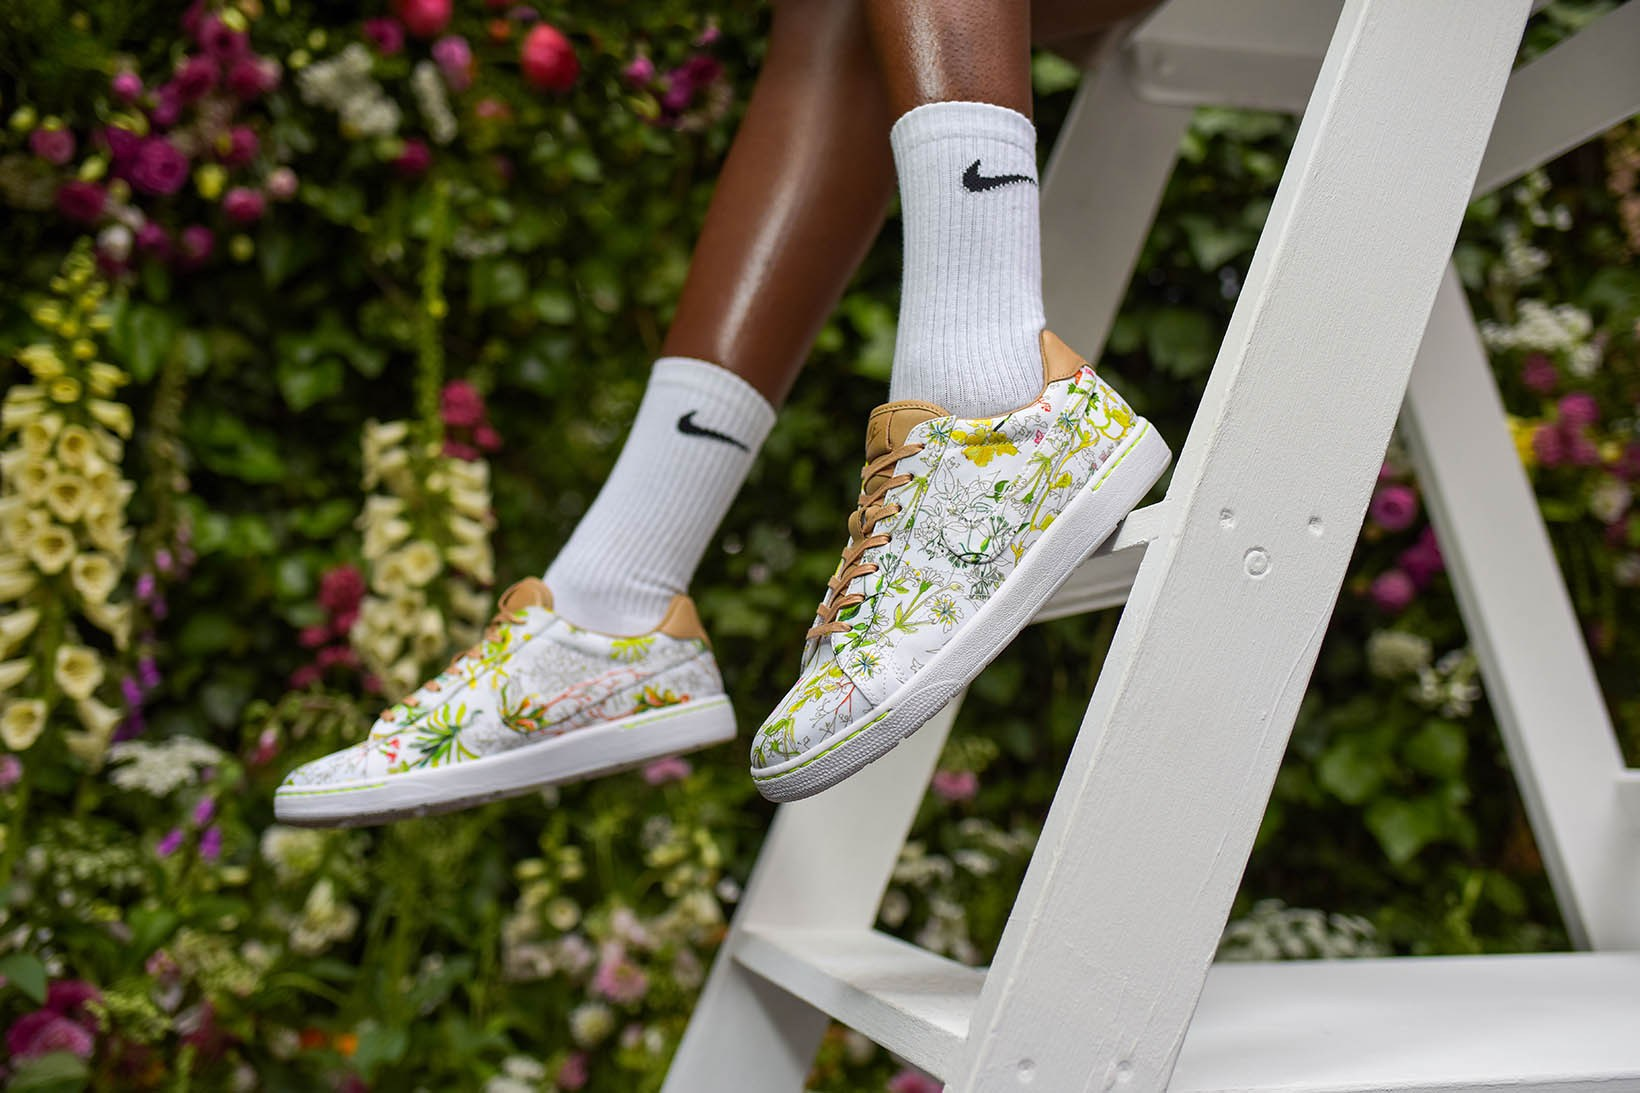 Liberty London x NikeCourt-2